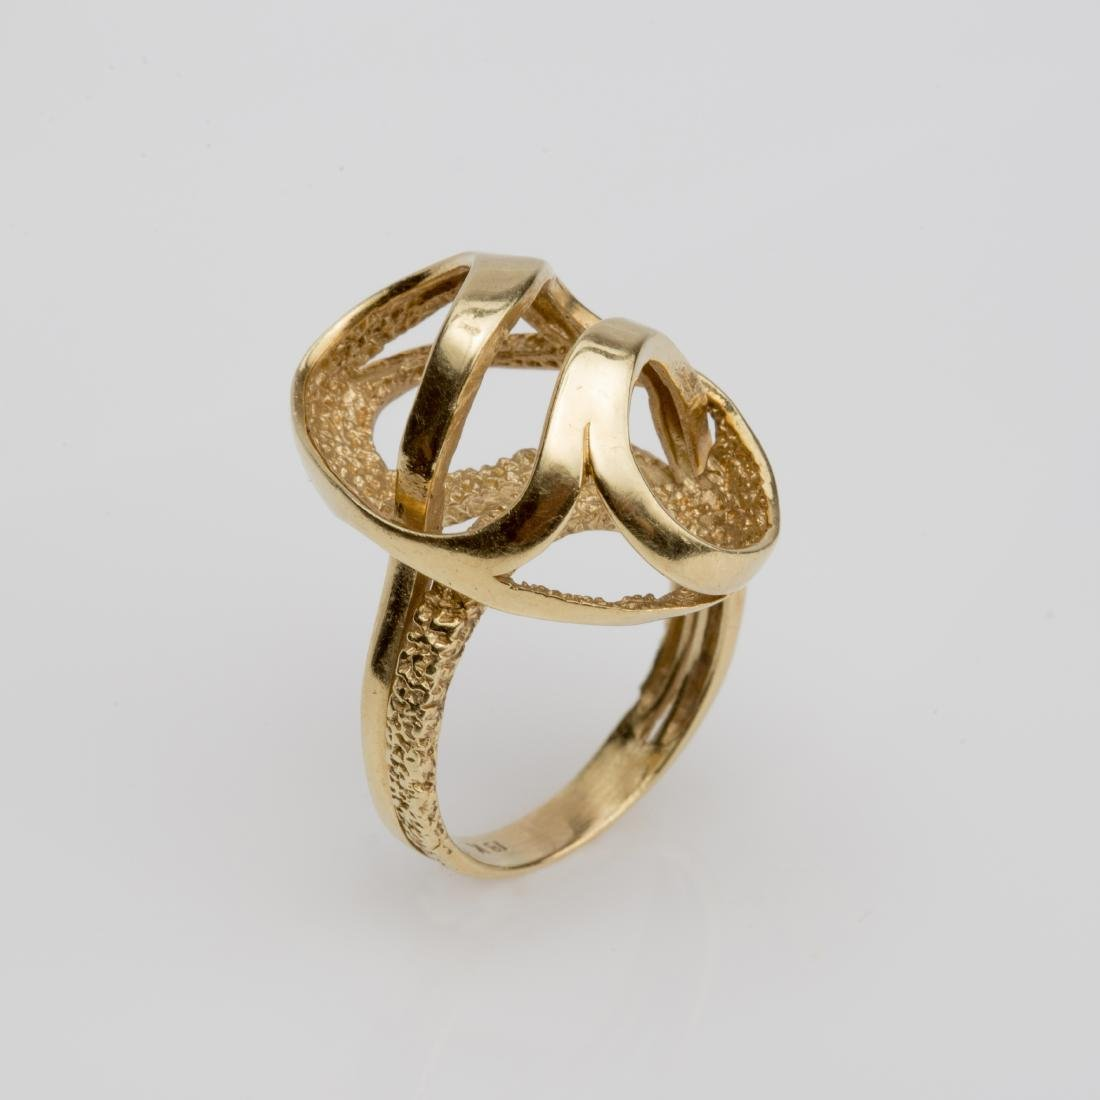 18K FASHION SWIRL COCKTAIL RING SIZE 6